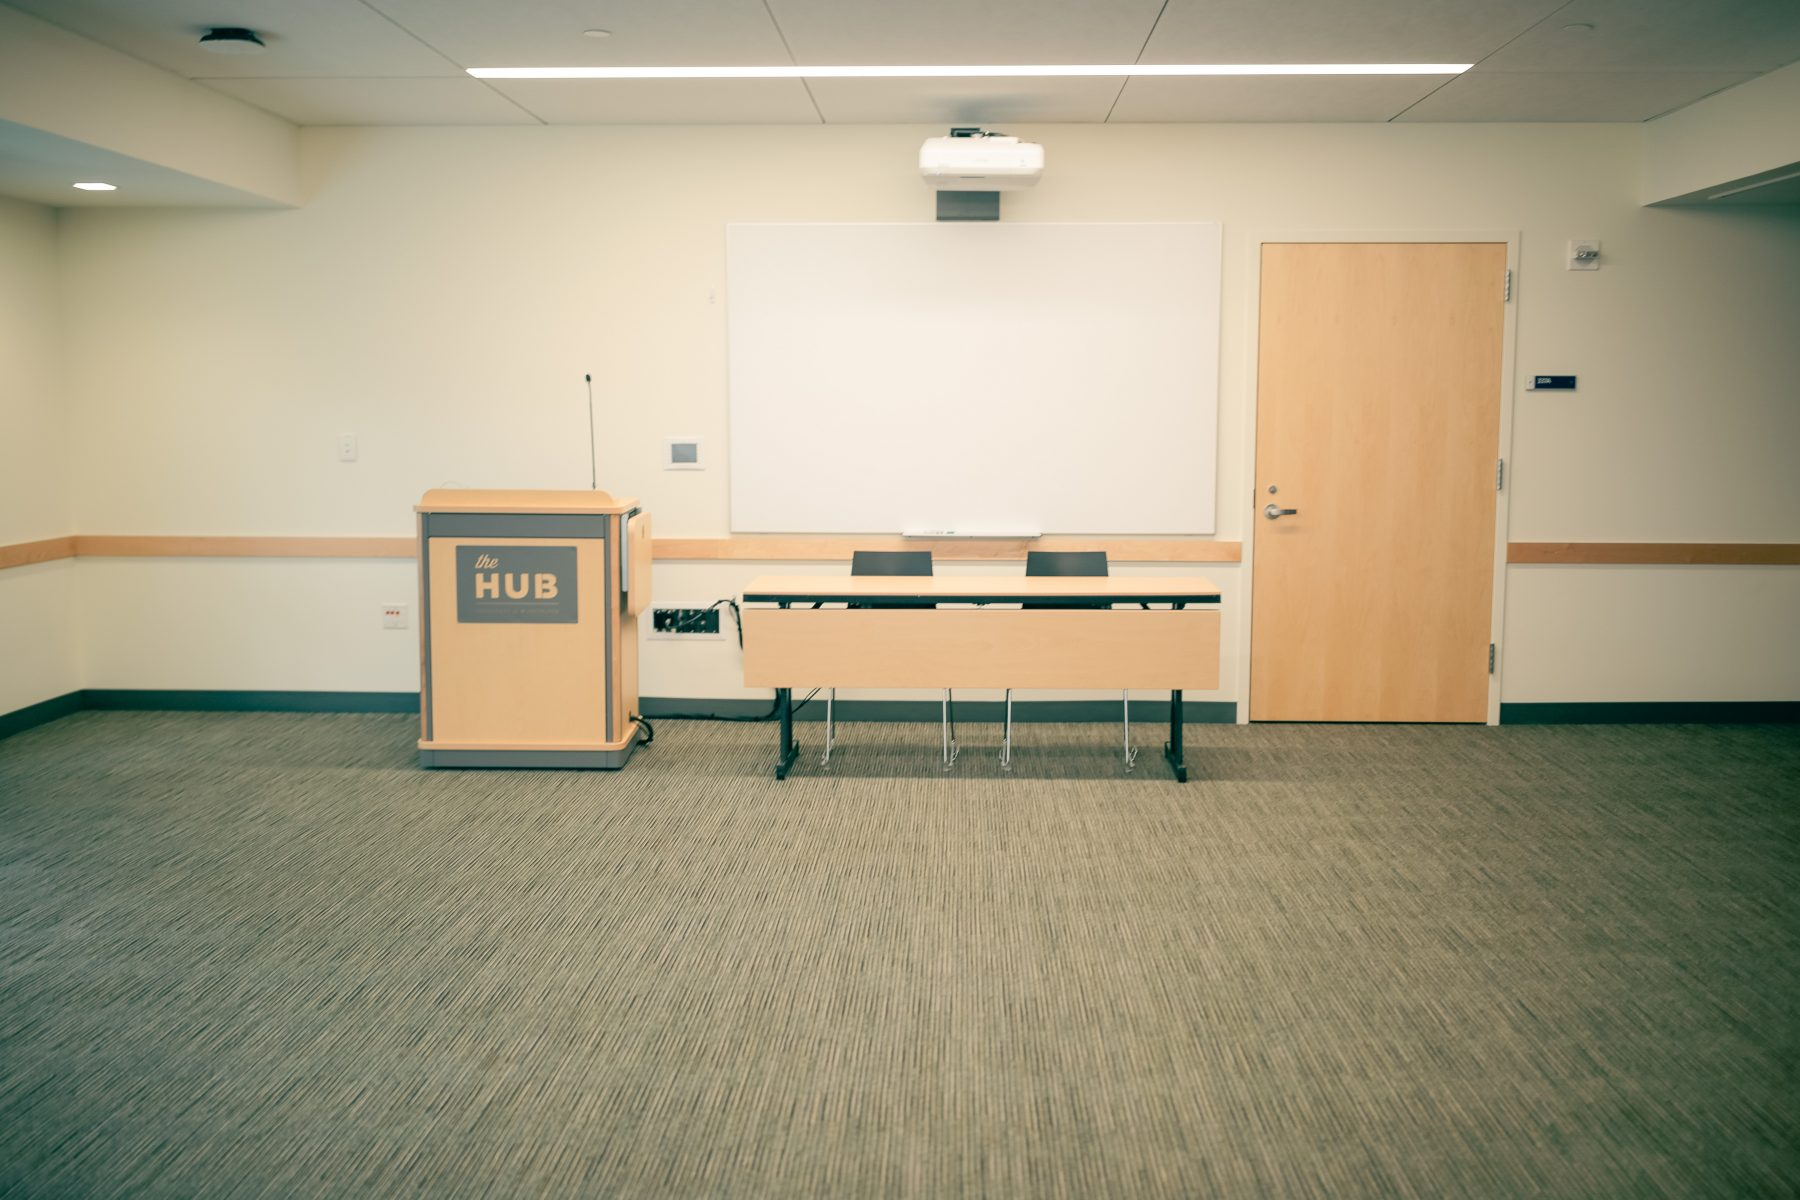 1 Head table and a meeting room lectern are included in the standard set